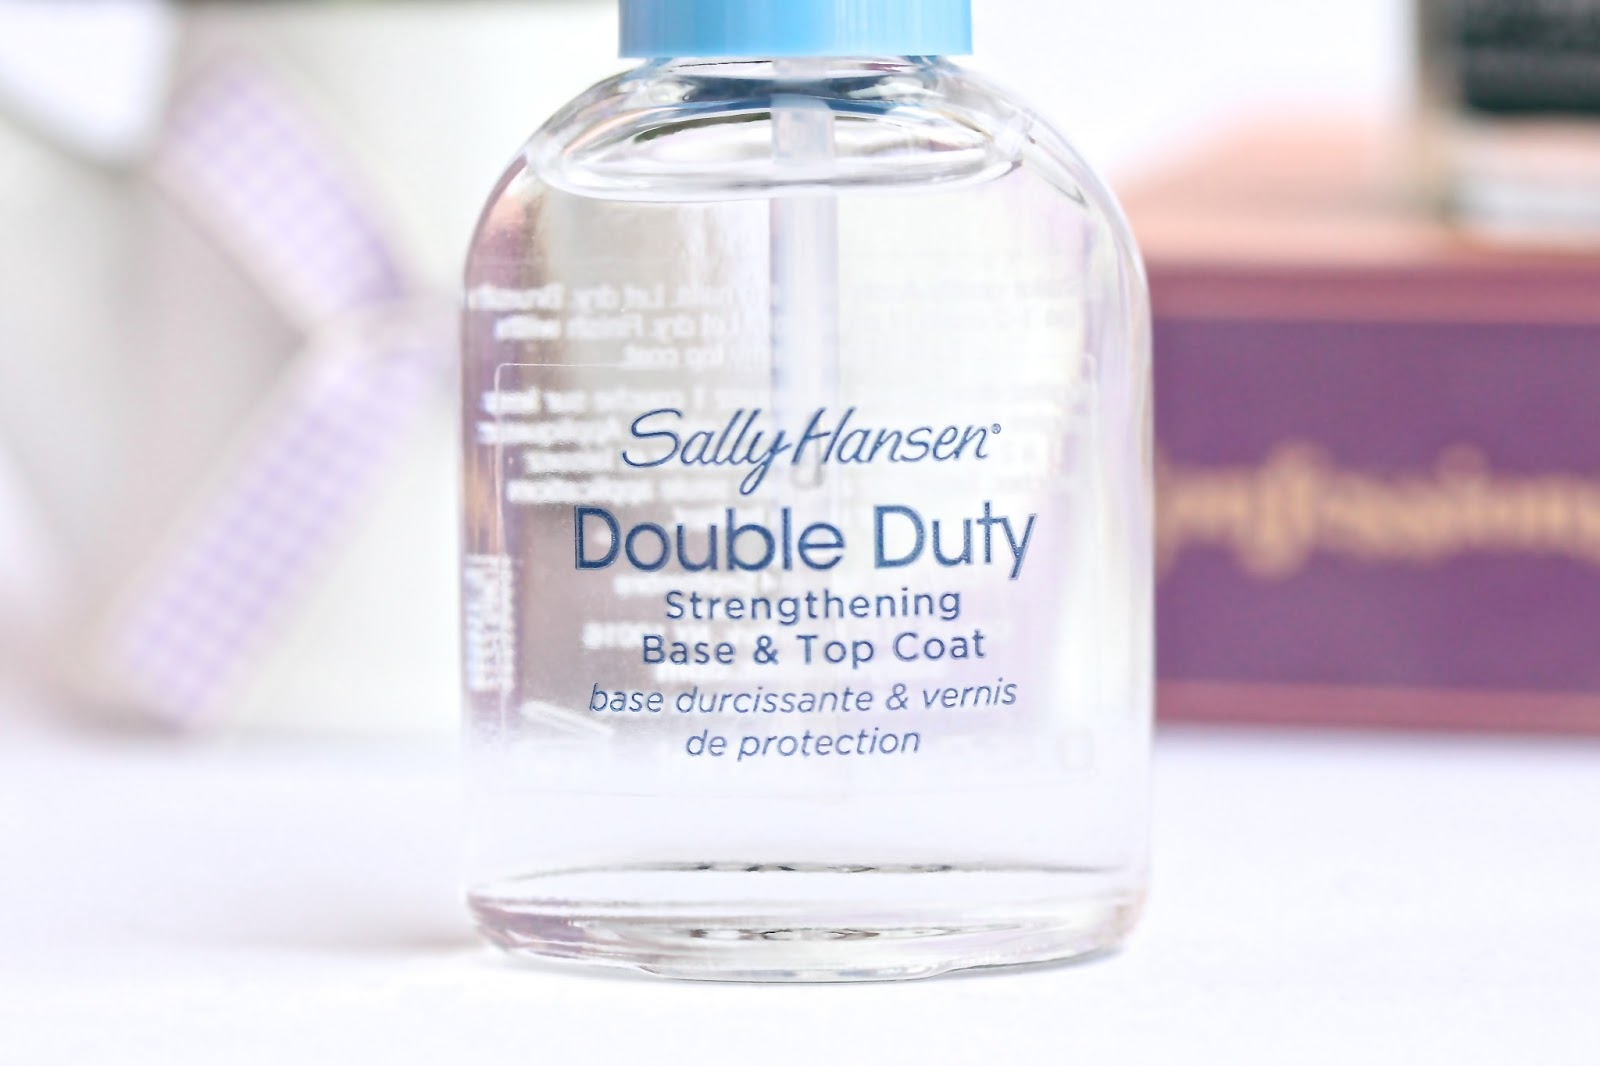 Sally Hansen Double Duty Strengthening Base & Top Coat